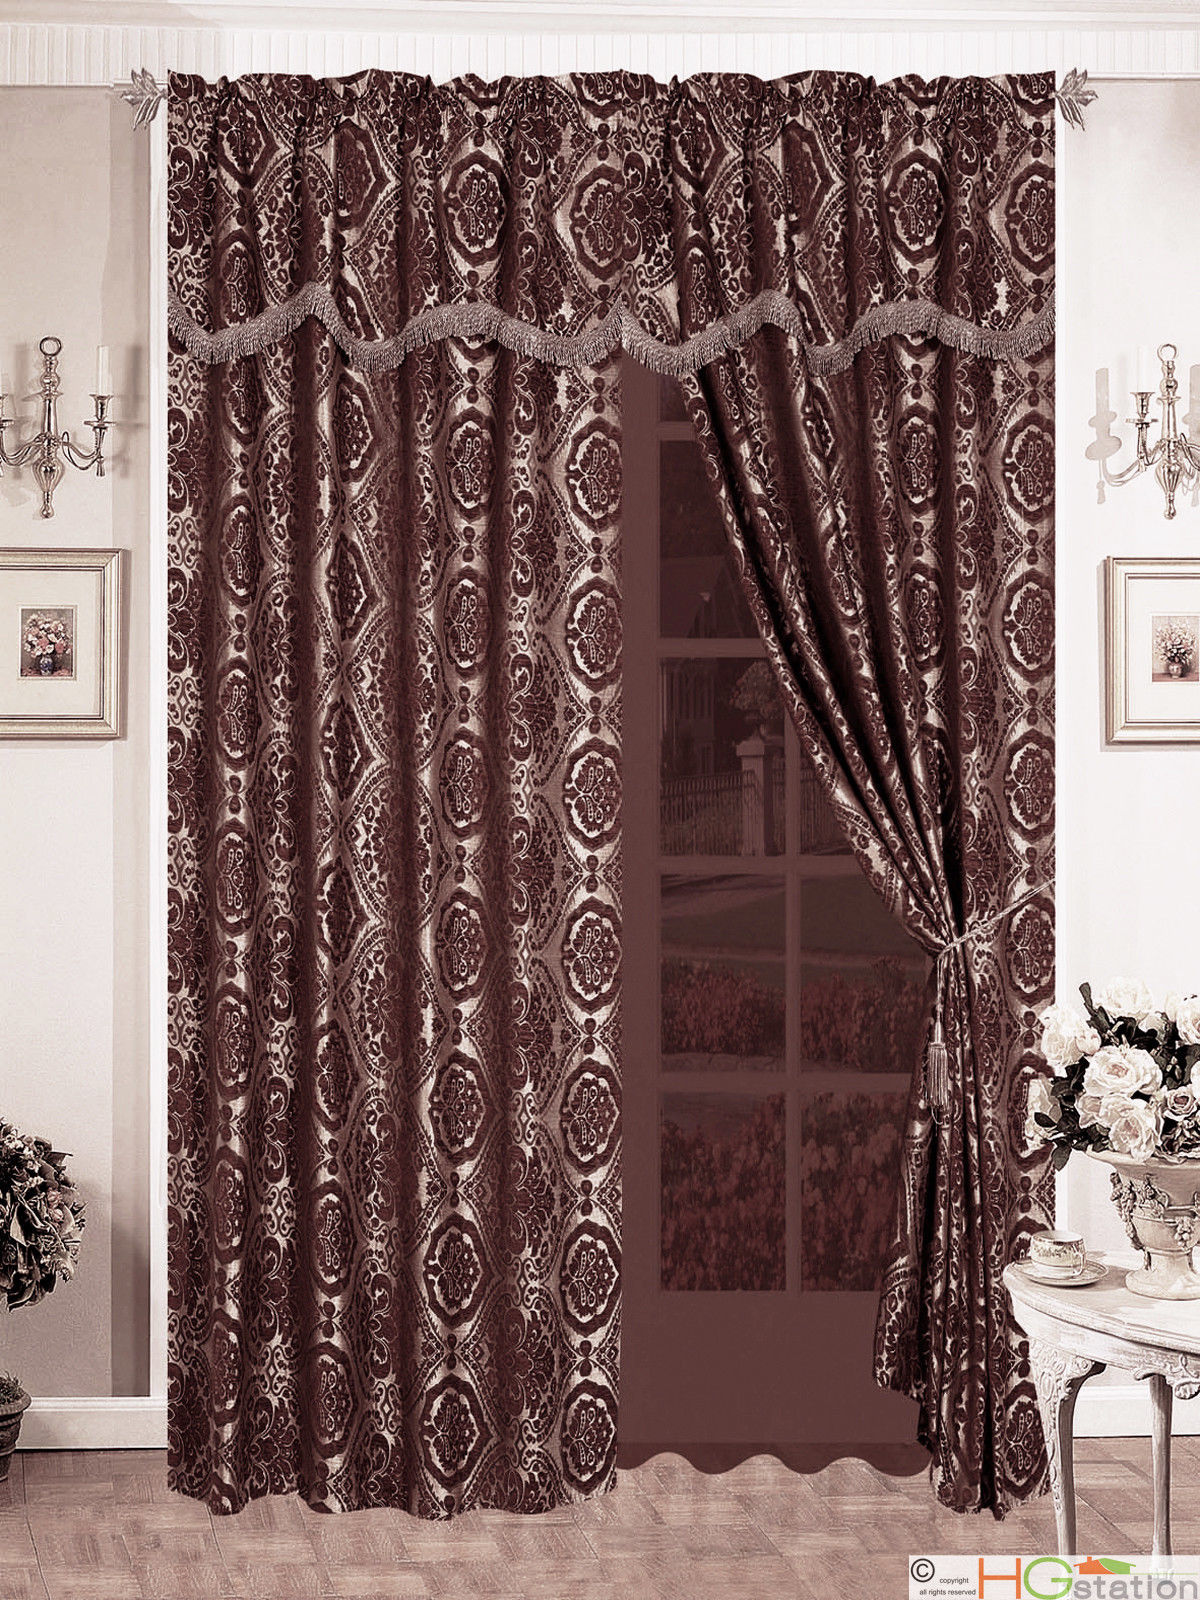 Primary image for 4Pc Quality Chenille Floral Damask Flocking Curtain Set Brown Gold Taupe Valance